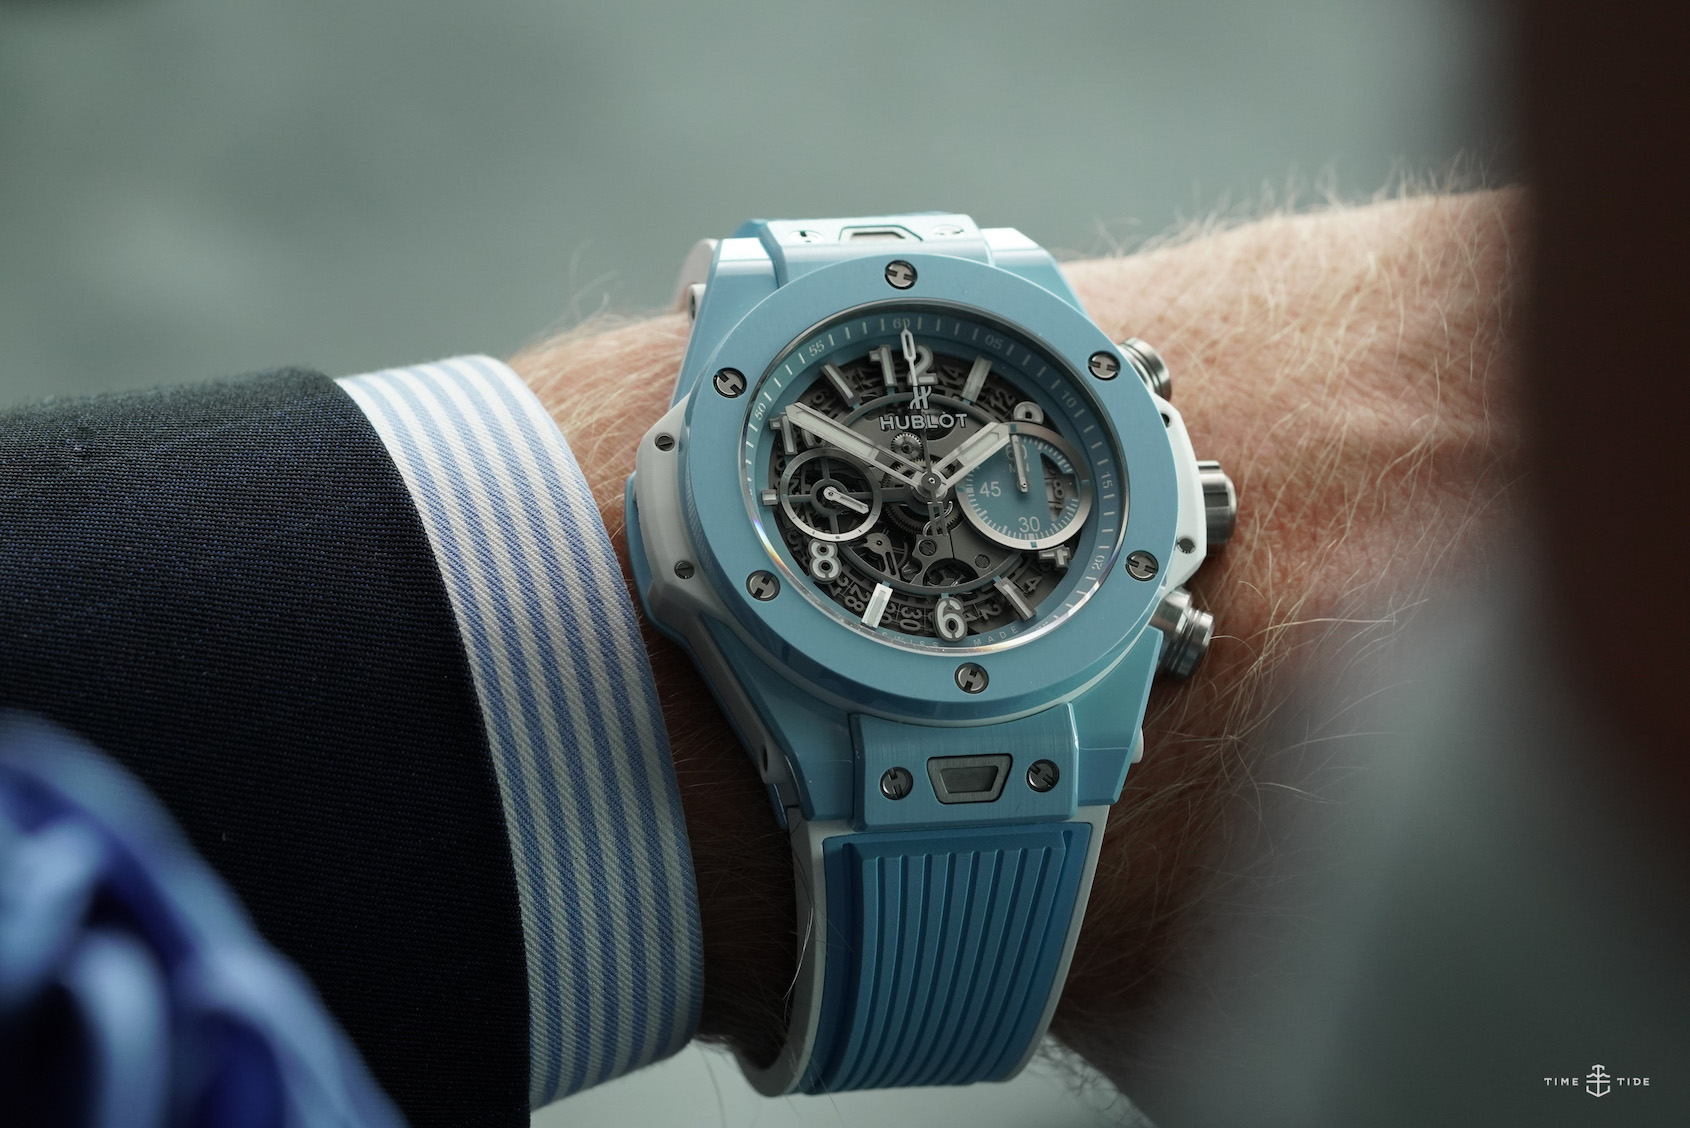 HANDS-ON: Hublot has nailed the 2020 mood with the most cheerful shade of sky blue for this Big Bang